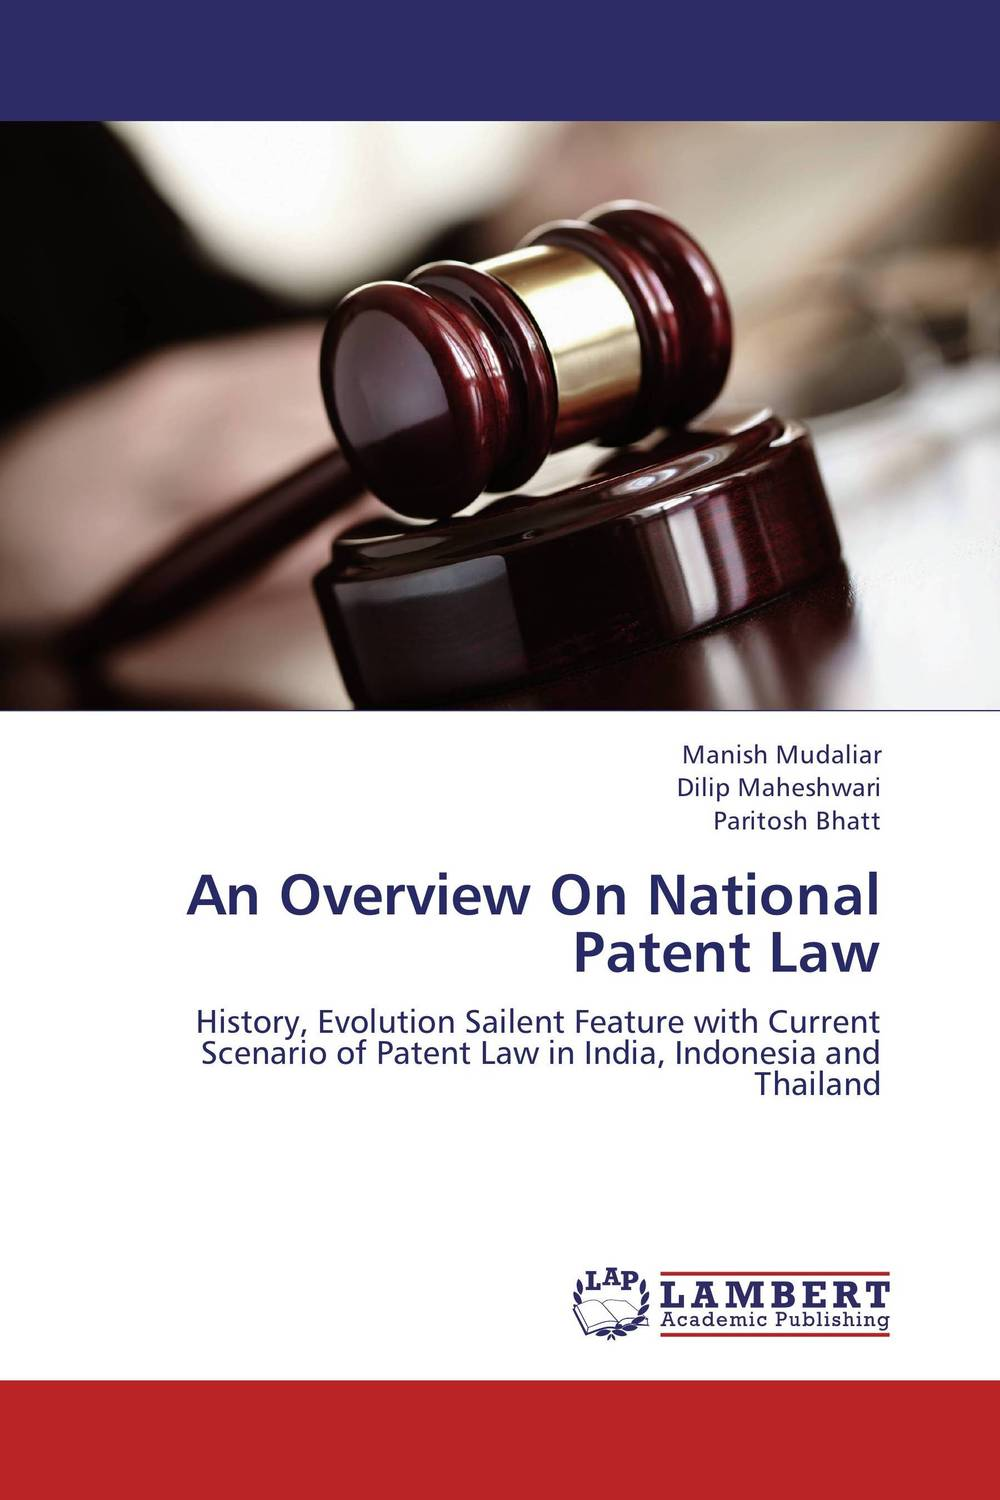 An Overview On National Patent Law p c execs bullish on growth property casualty insurance statistical data included an article from national underwriter property